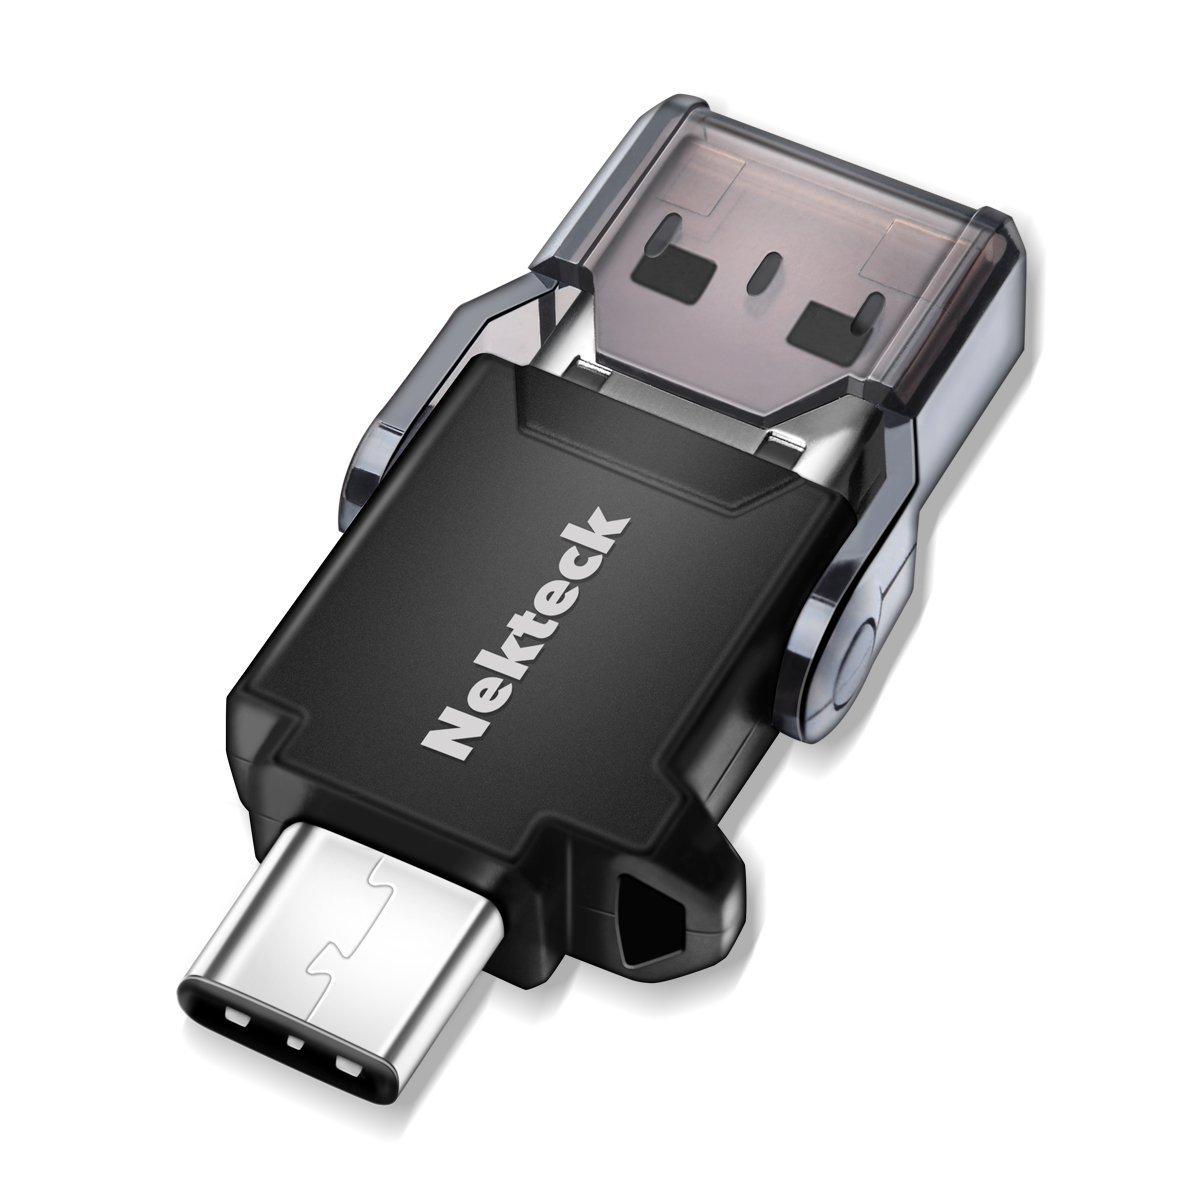 Nekteck USB Type C OTG Micro SD Card Reader with Additional Standard USB Port Connector (SD Card is NOT included)